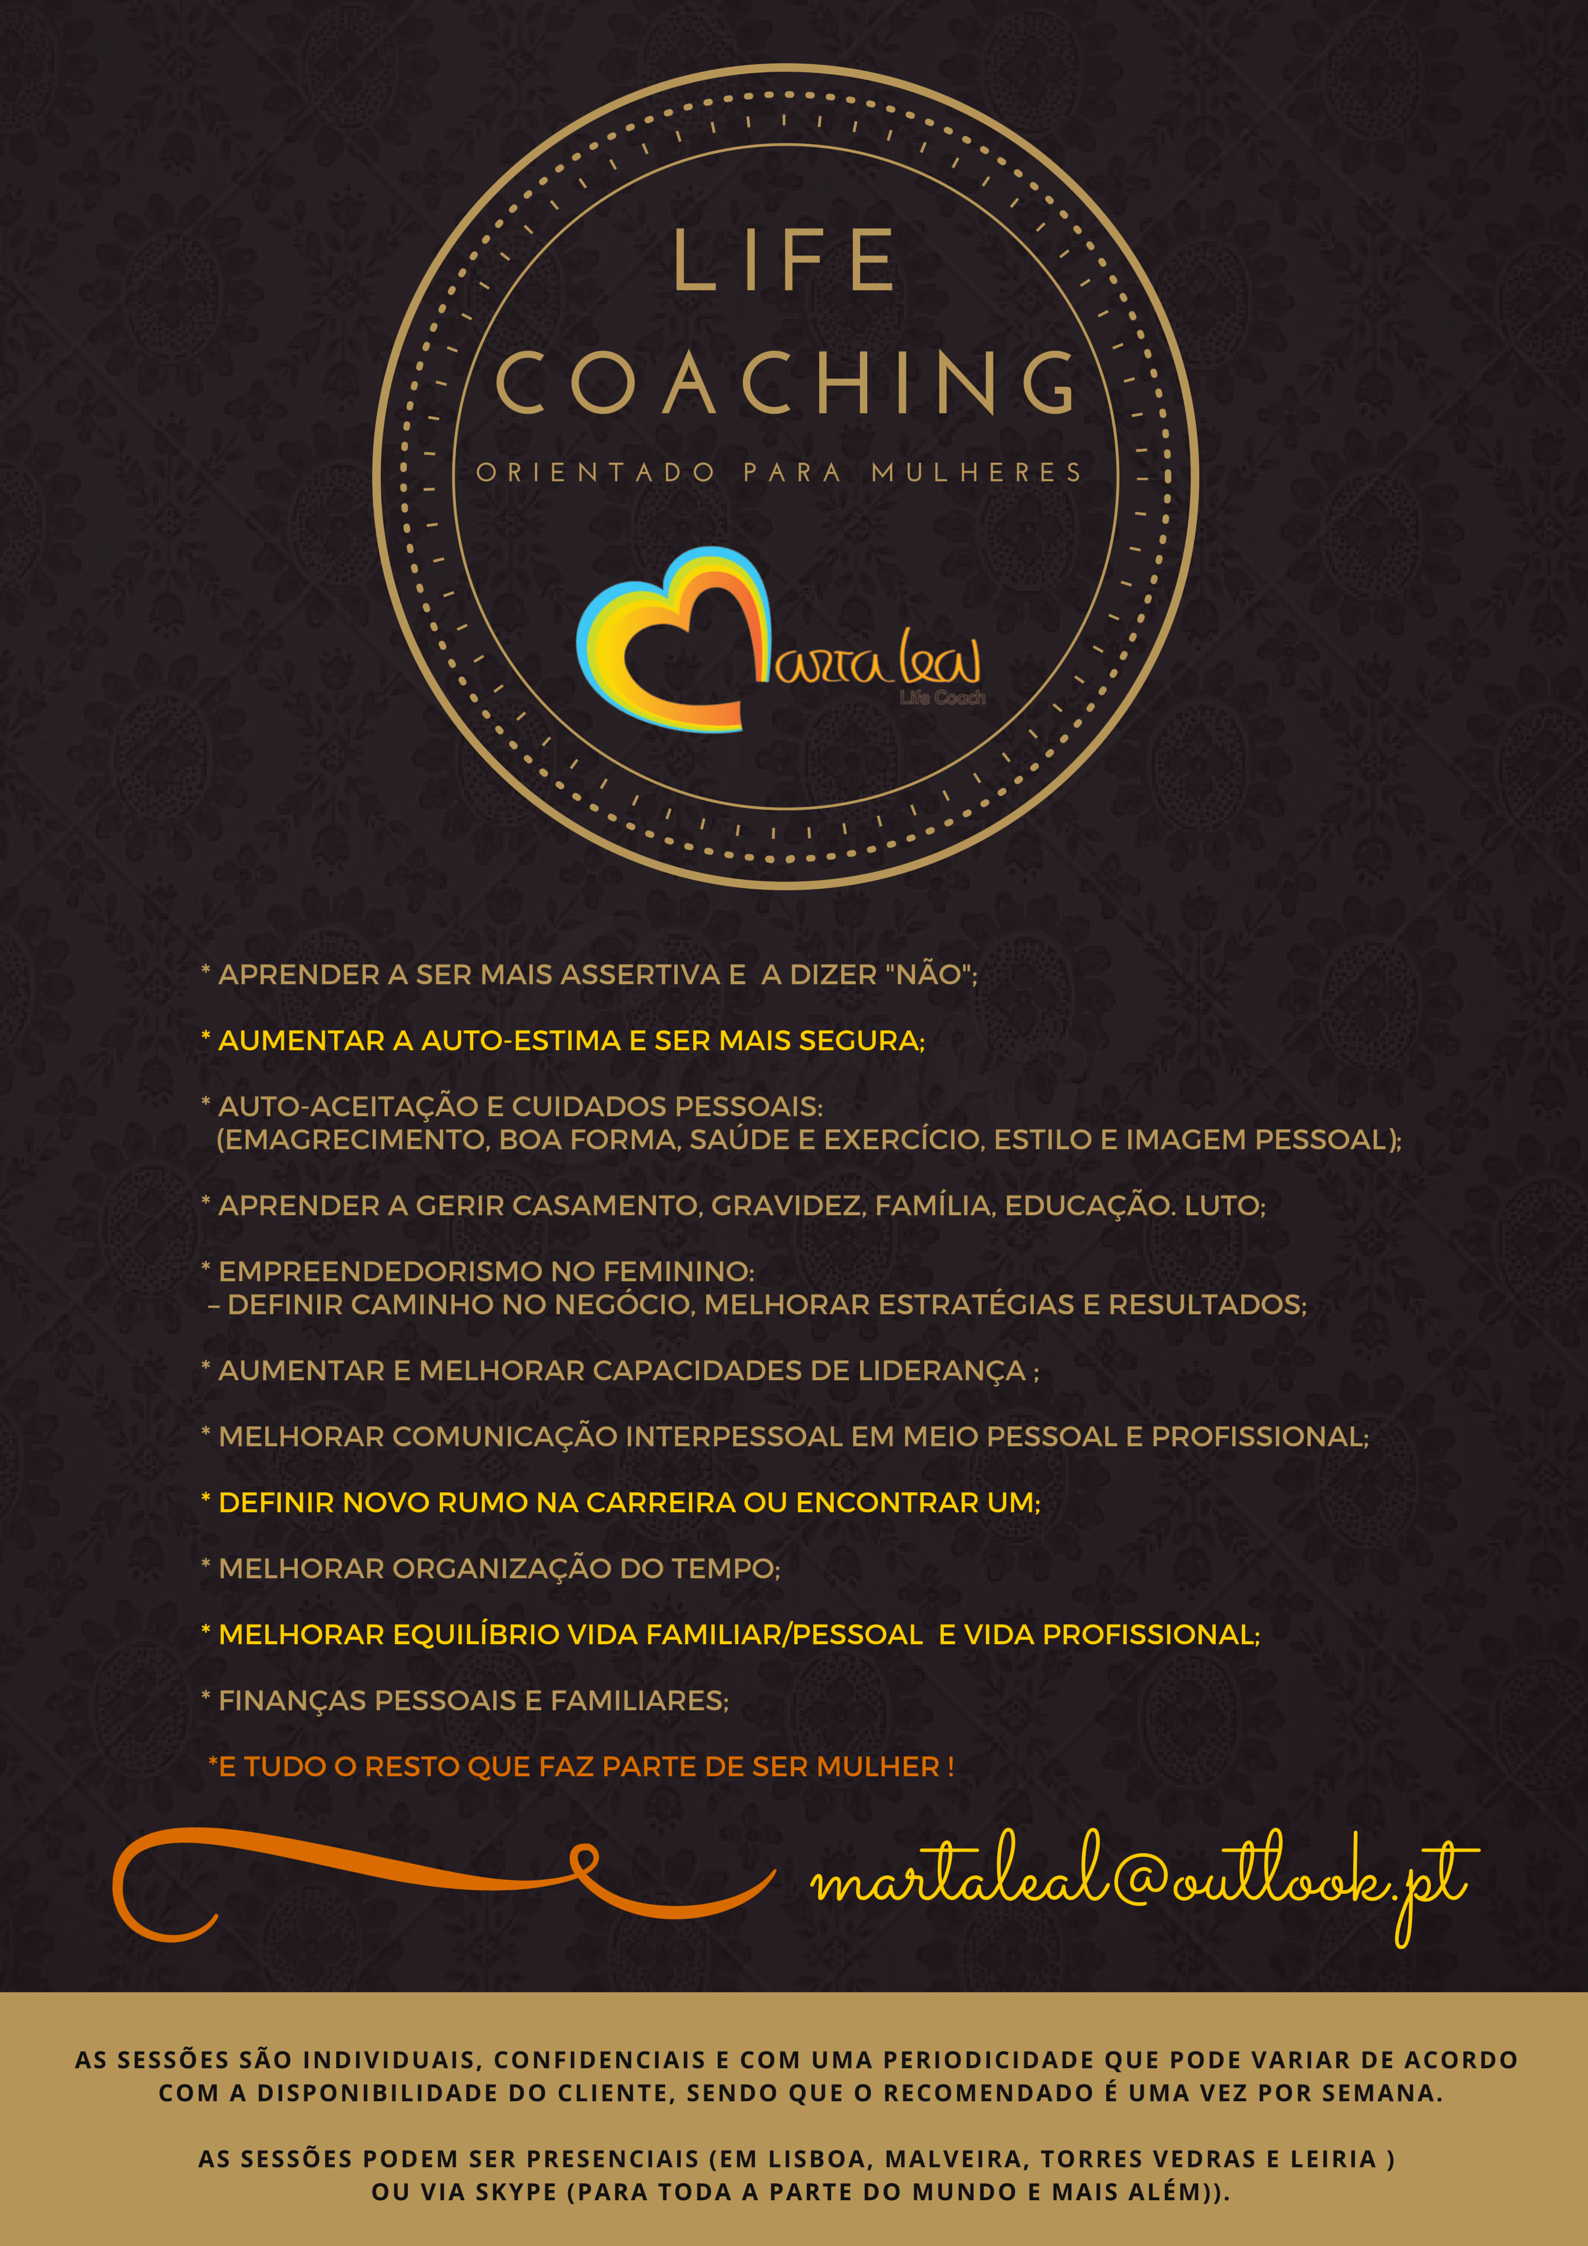 life coaching mulheres_marta leal (1).png